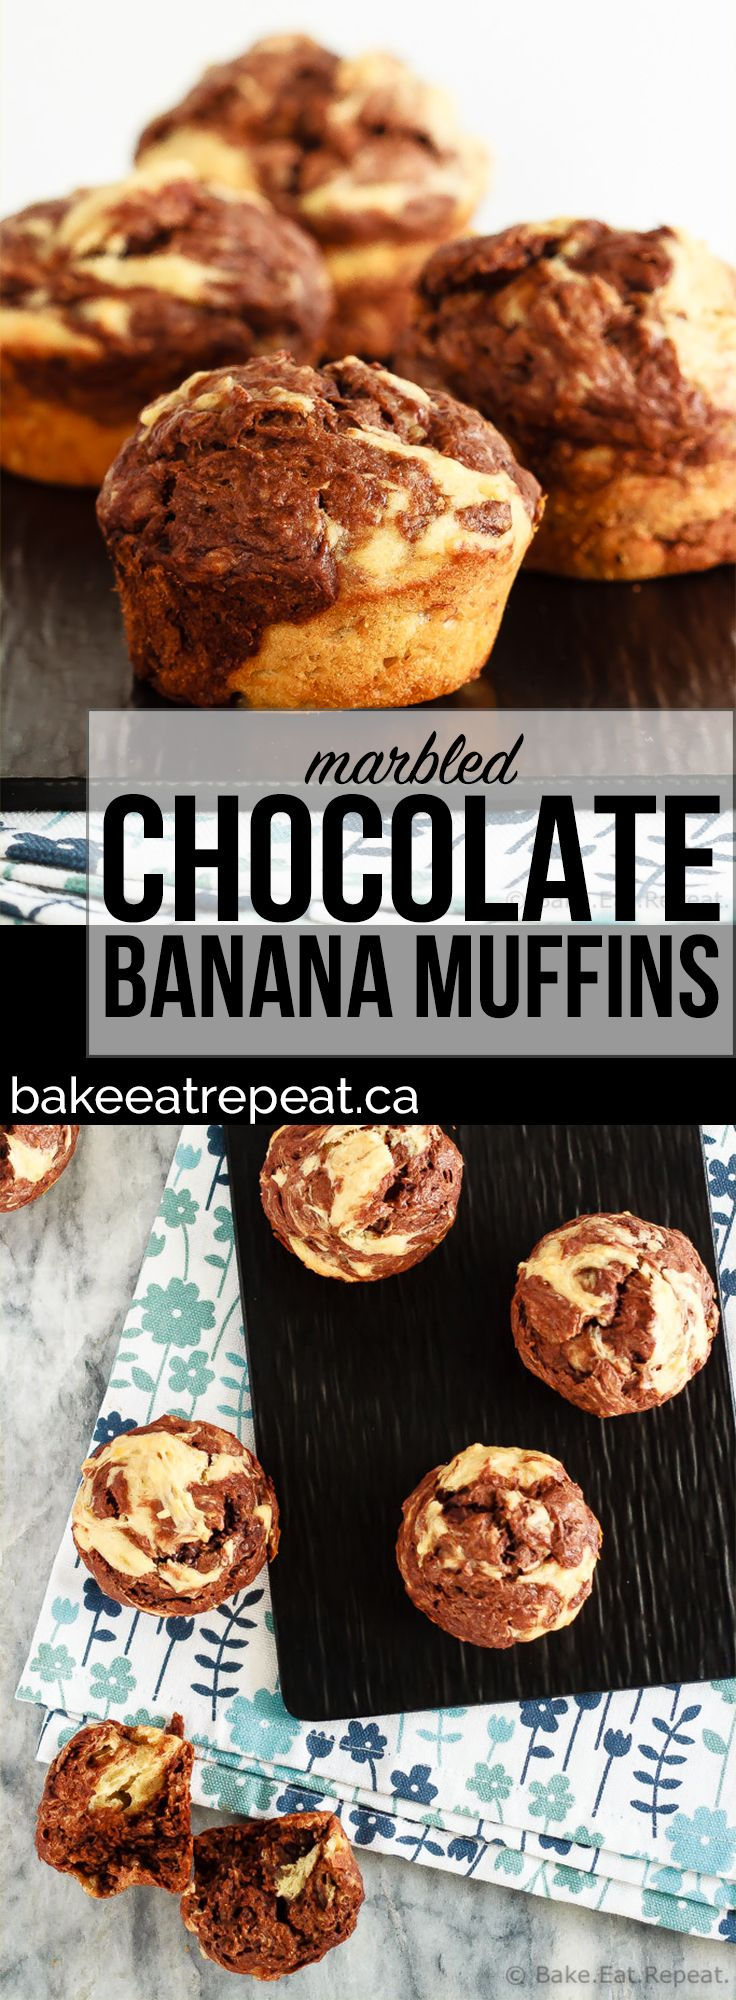 These marbled chocolate banana muffins, made with minimal sugar and plain Greek yogurt to keep them a bit healthier, make the perfect breakfast or snack!